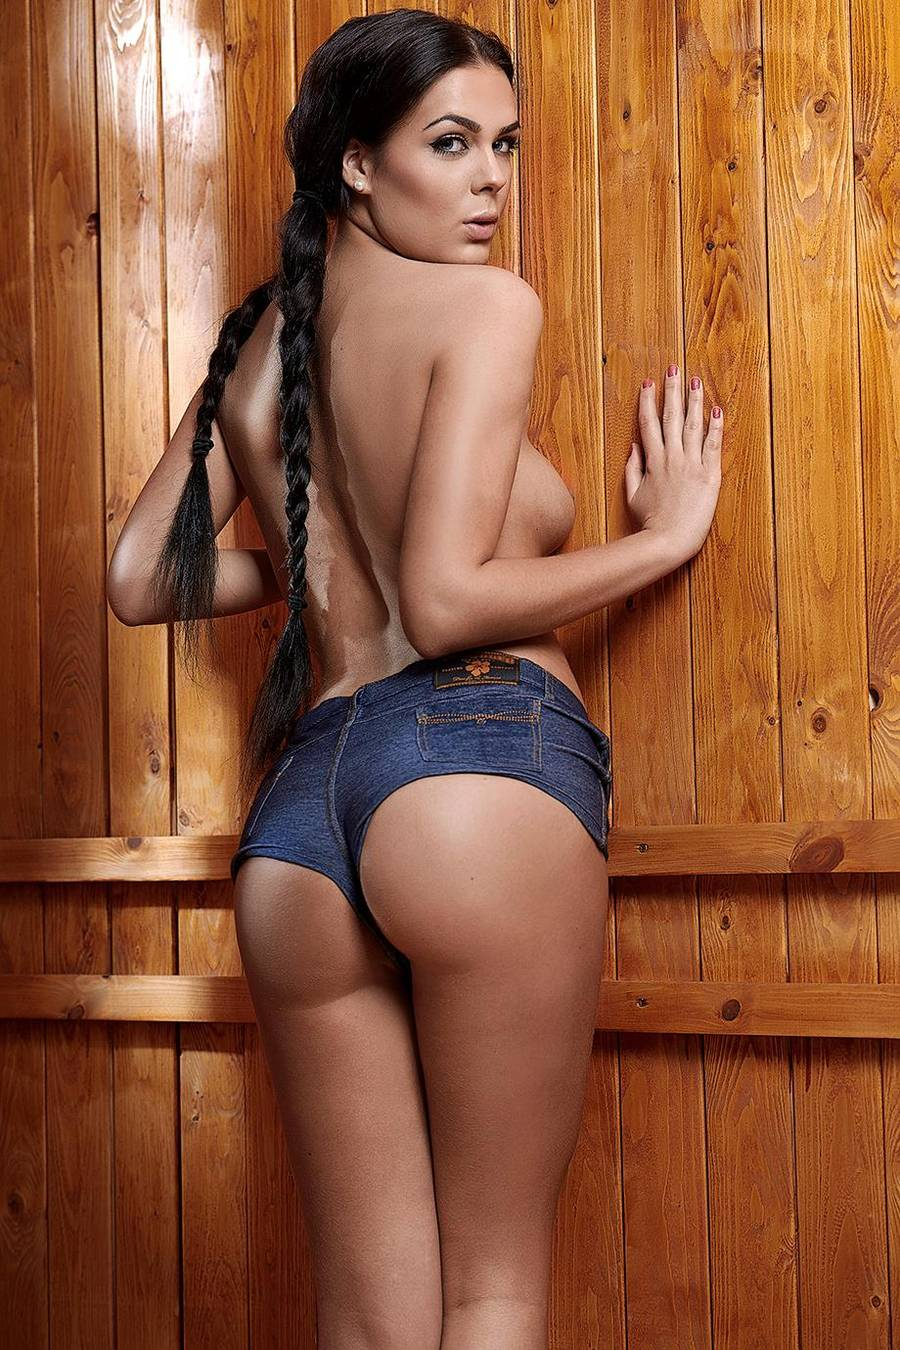 suree thai massage cuckold danmark